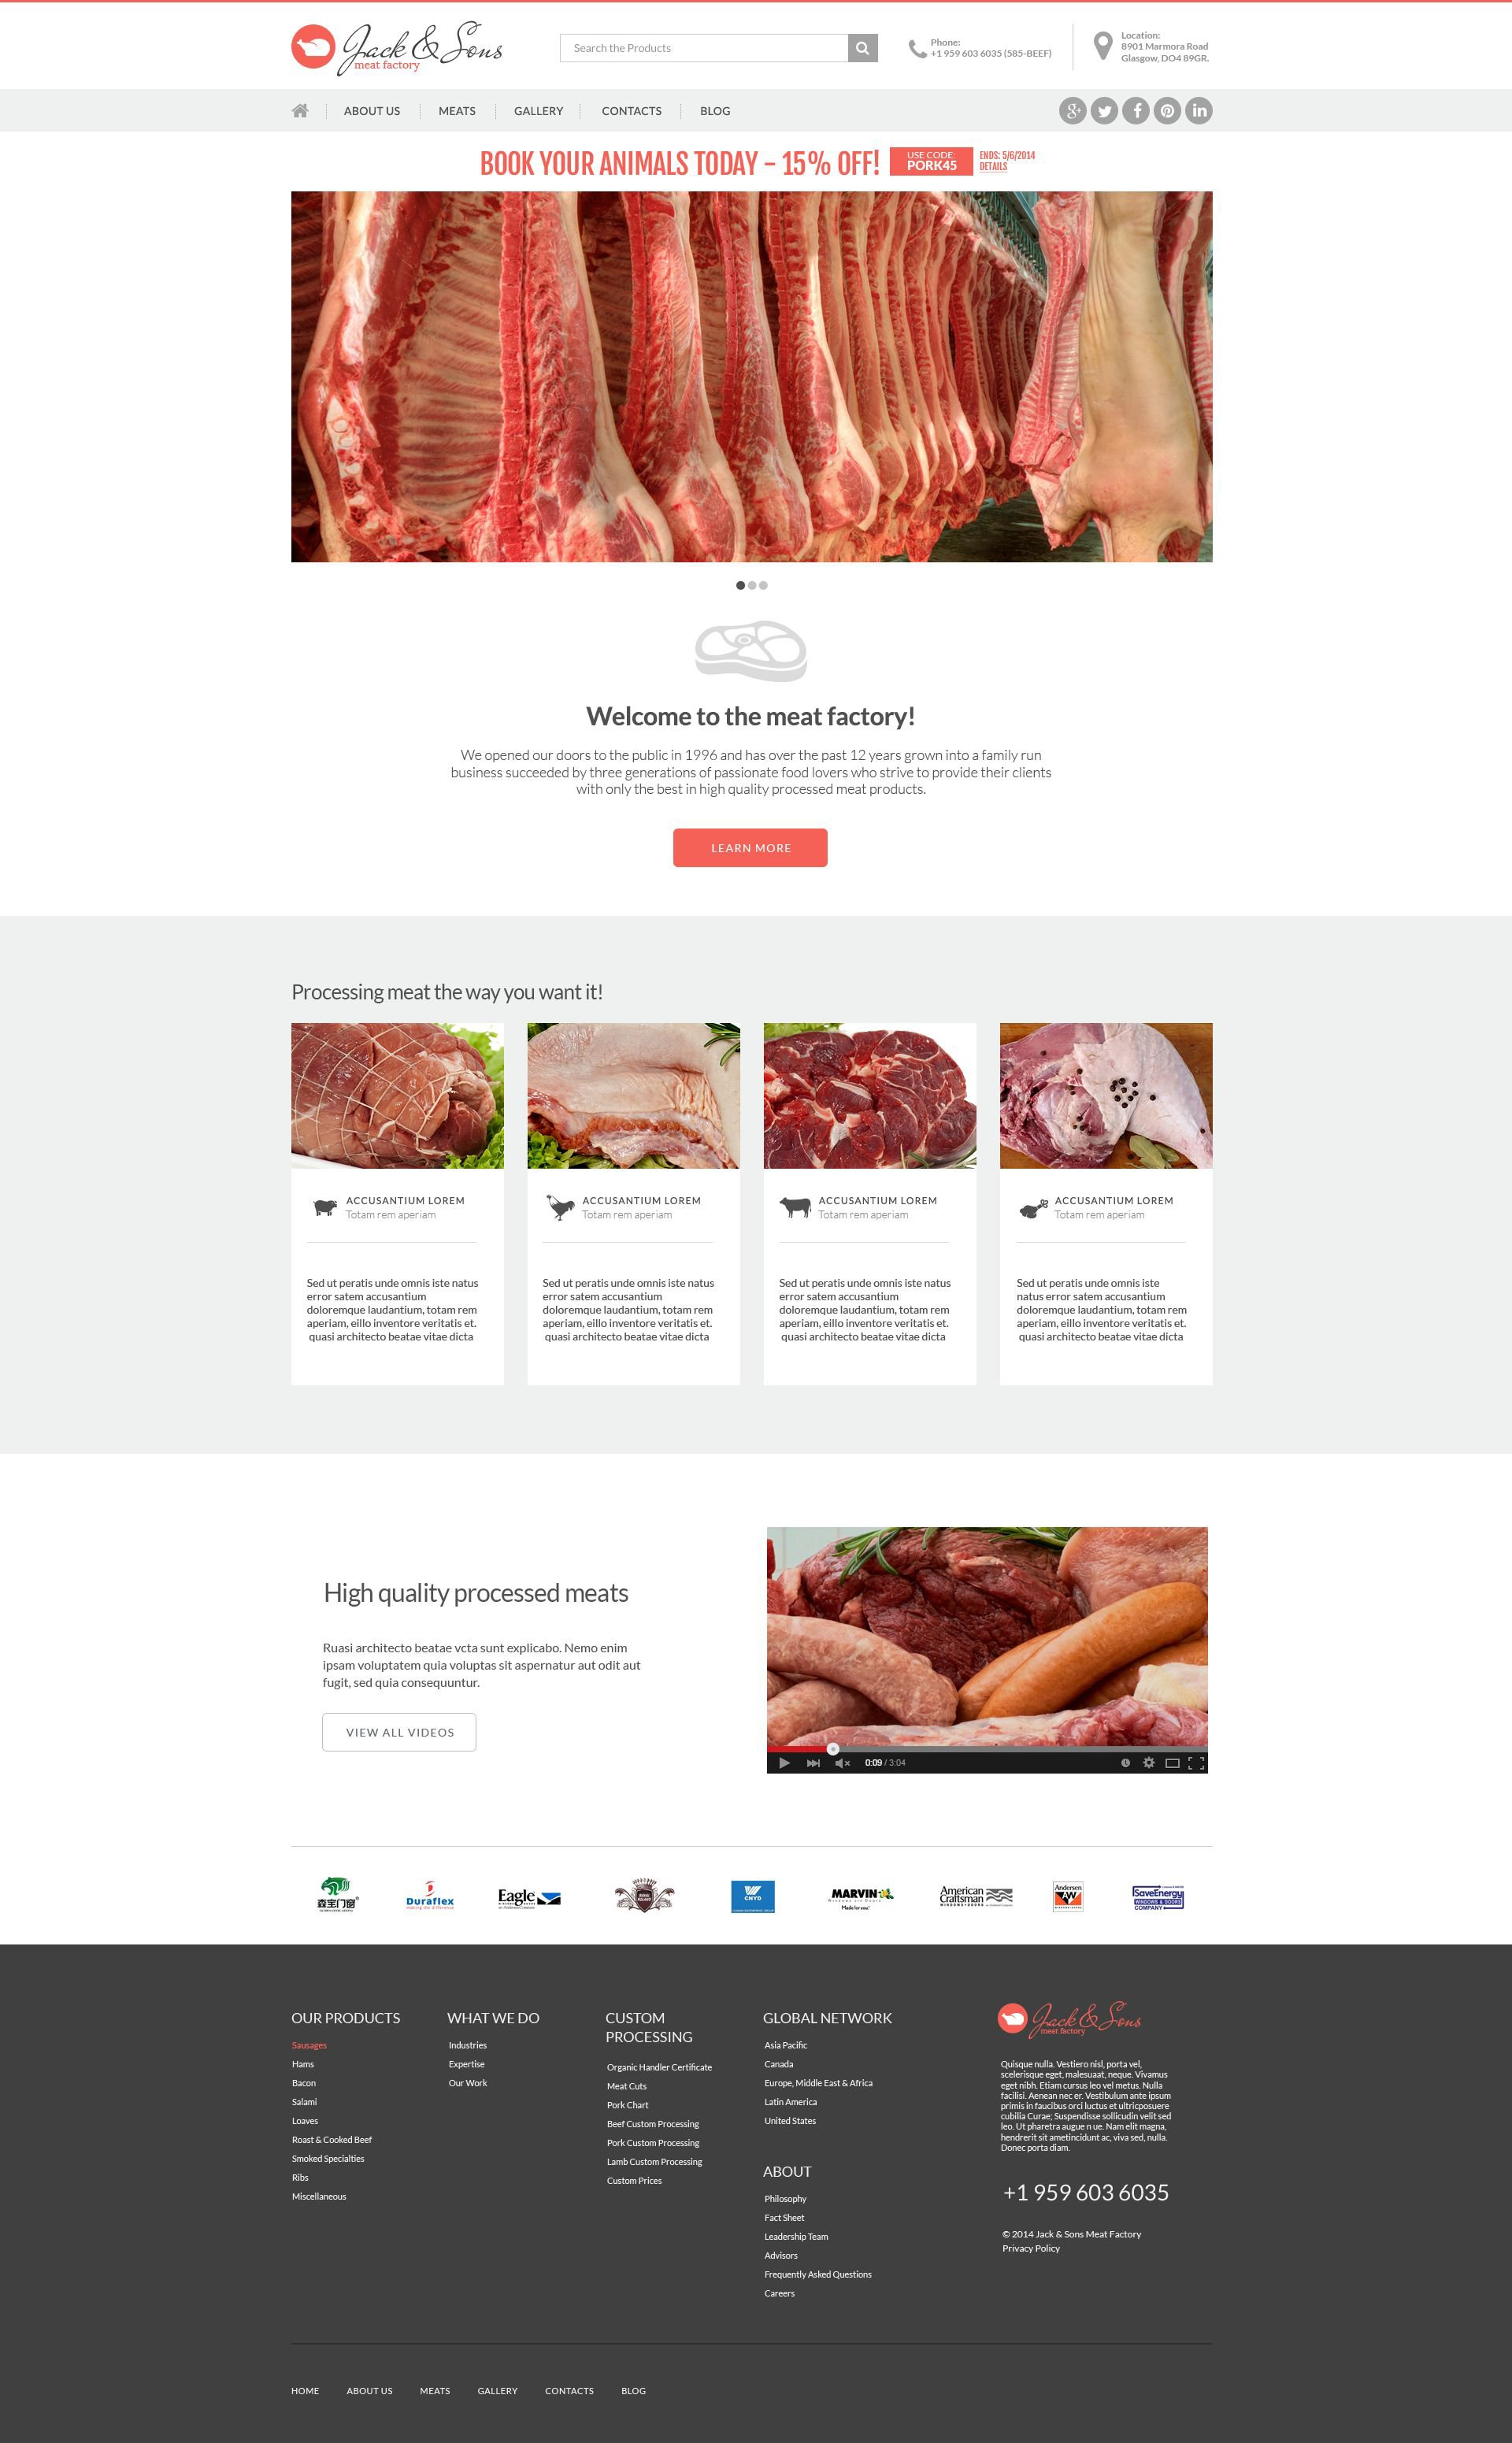 The Meat Factory Drupal Design 53558, one of the best Drupal templates of its kind (agriculture, most popular), also known as meat factory Drupal template, plant Drupal template, fresh Drupal template, quality Drupal template, slaughtering Drupal template, processing Drupal template, cutting Drupal template, beef Drupal template, pork Drupal template, lamb Drupal template, goat Drupal template, sausages Drupal template, hams Drupal template, bacon Drupal template, salami Drupal template, roast Drupal template, cooked Drupal template, smoked Drupal template, ribs and related with meat factory, plant, fresh, quality, slaughtering, processing, cutting, beef, pork, lamb, goat, sausages, hams, bacon, salami, roast, cooked, smoked, ribs, etc.